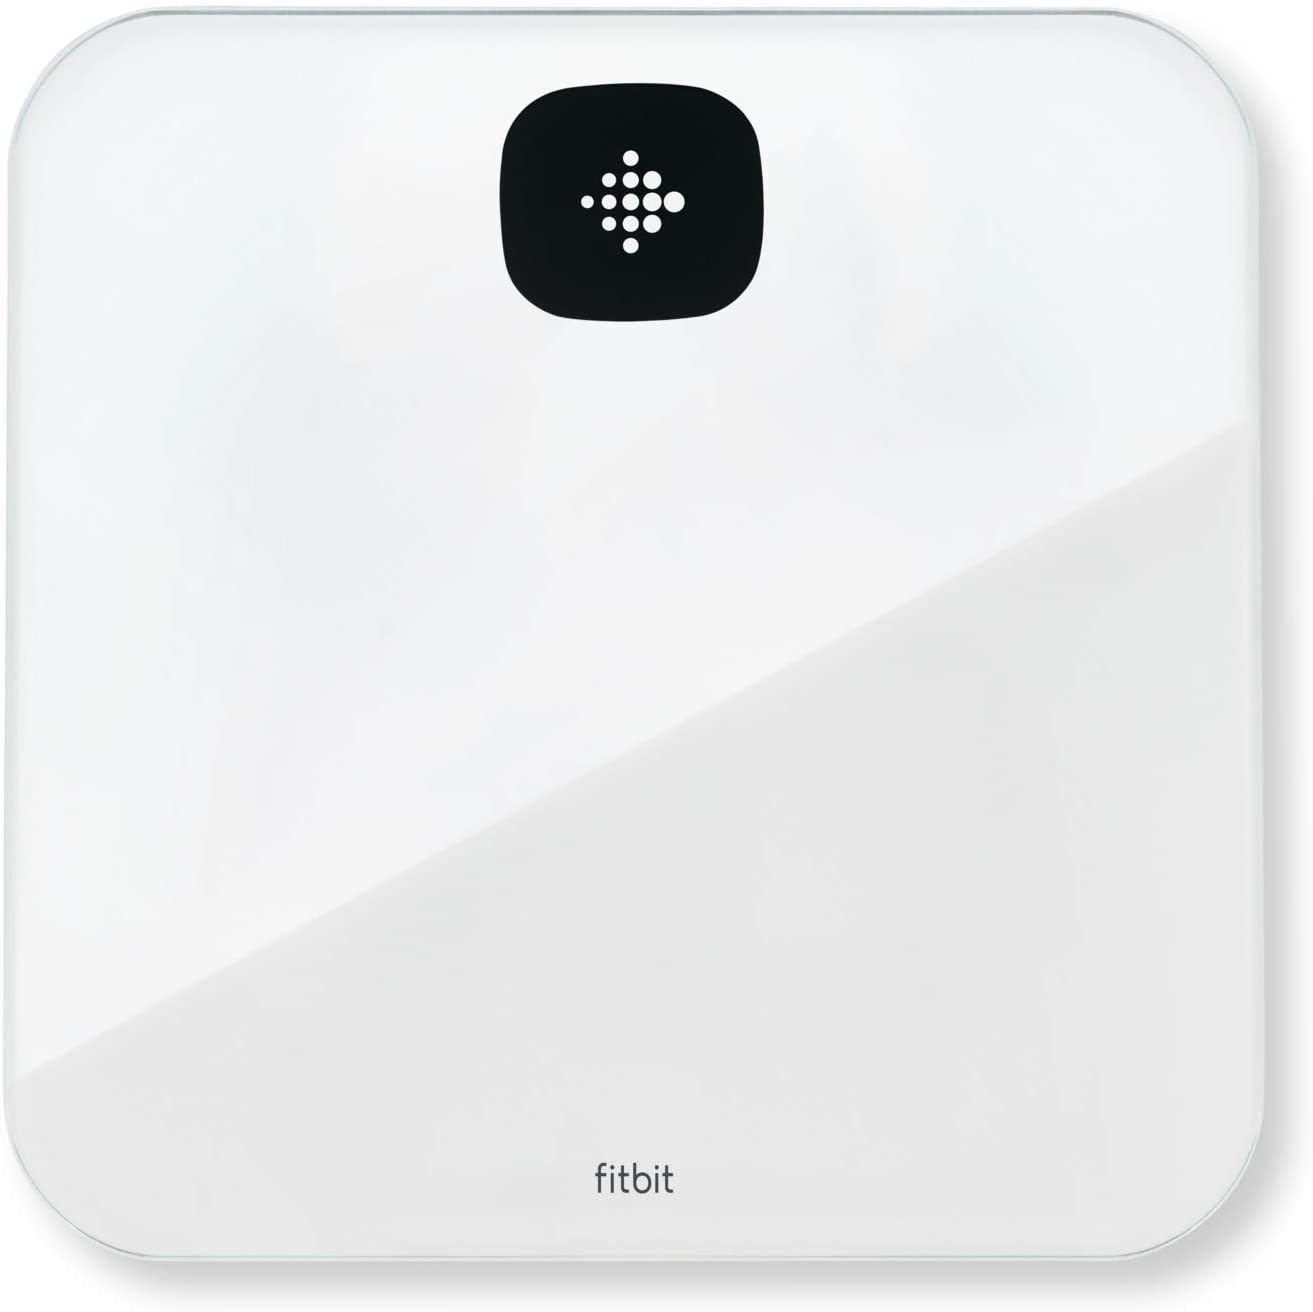 Fitbit Aria Air Bluetooth Digital Body Weight and BMI Smart Scale, White